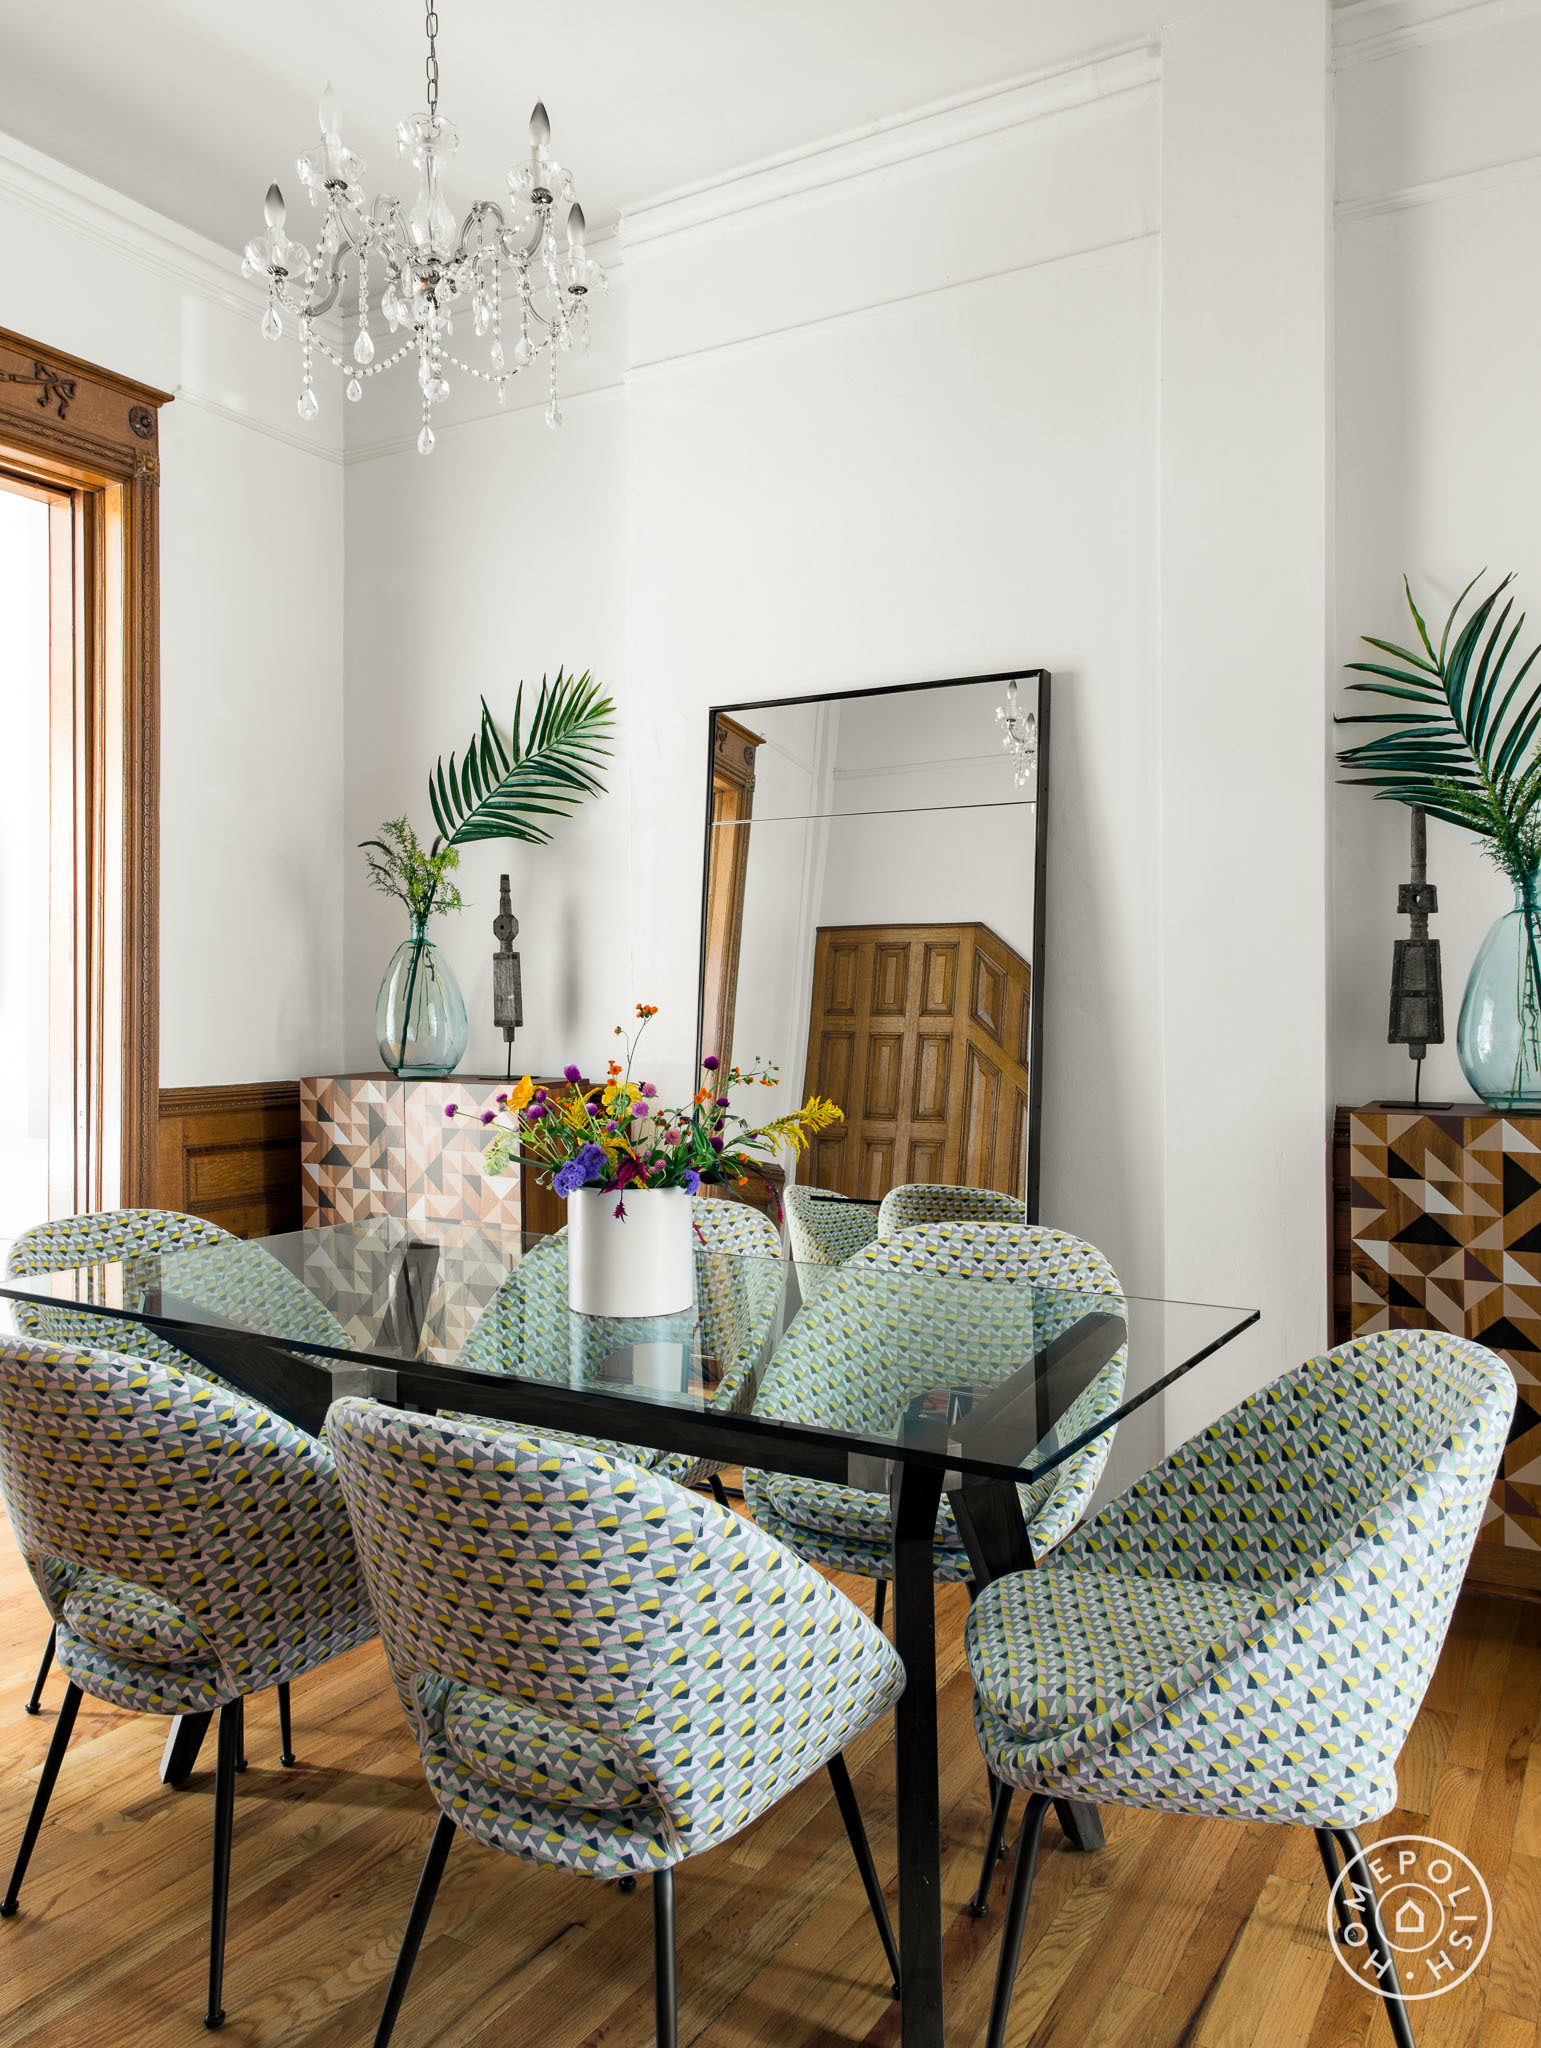 In the dining room, there are patterned chairs around a modern table sitting beneath a traditional crystal chandelier. The centerpiece of the living room is a vividly colorful rug, which is contrasted by neutral furnishings around it. It's bright but elegant; great for kids and guests. The den of this Brooklyn brownstone has plenty of storage for toys, a soft rug to play on the floor, fun bright art and patterns, (plus a great sofa for building forts).